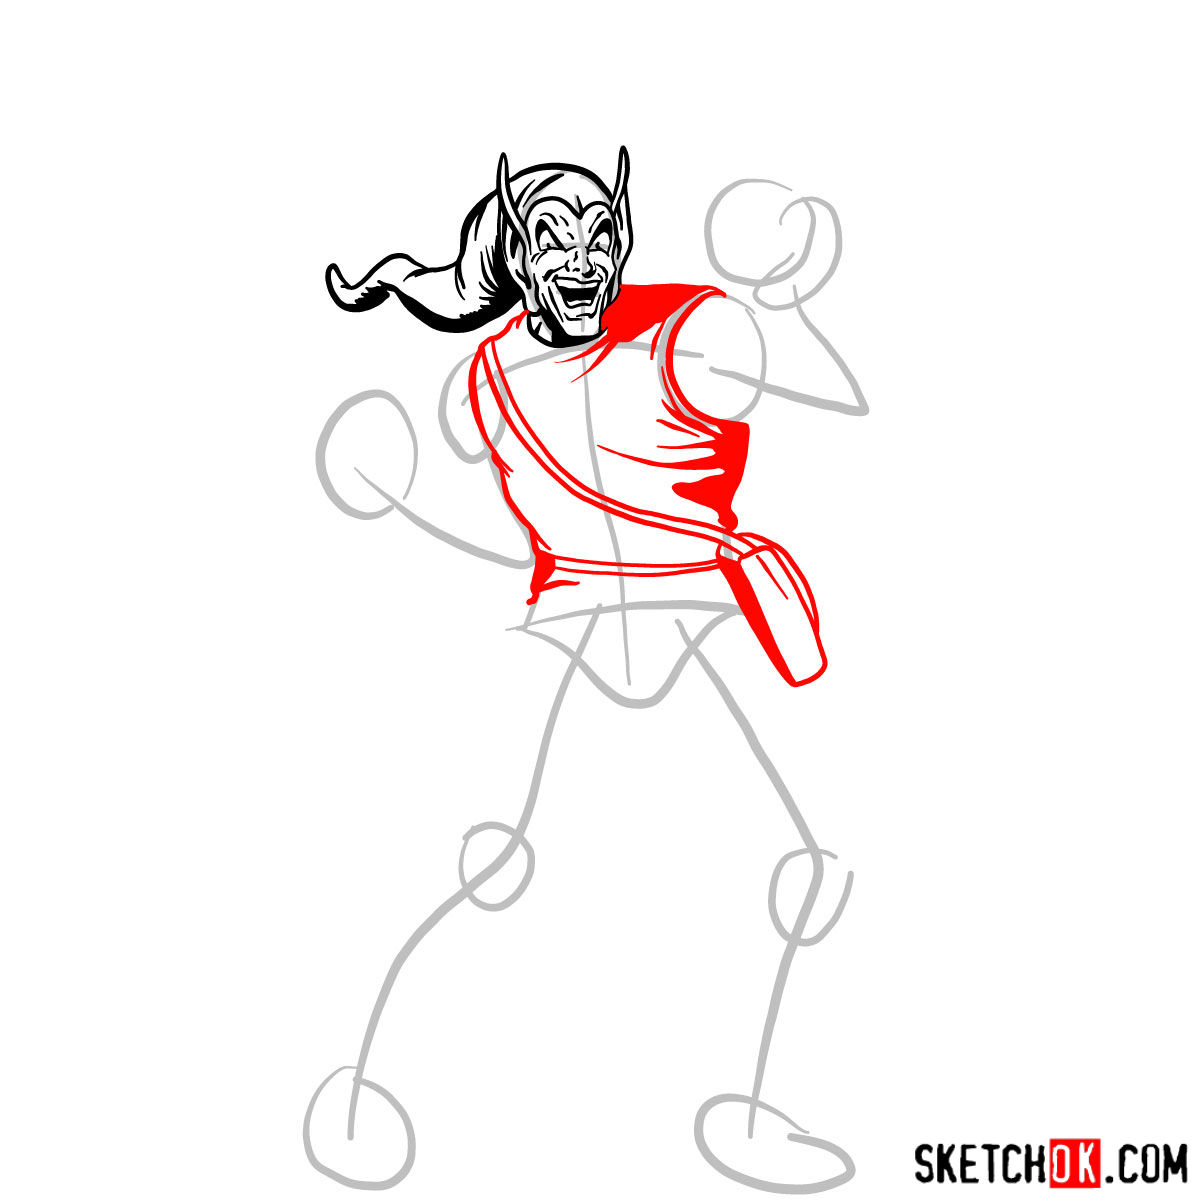 How to draw Norman Osborn the Green Goblin - step 05